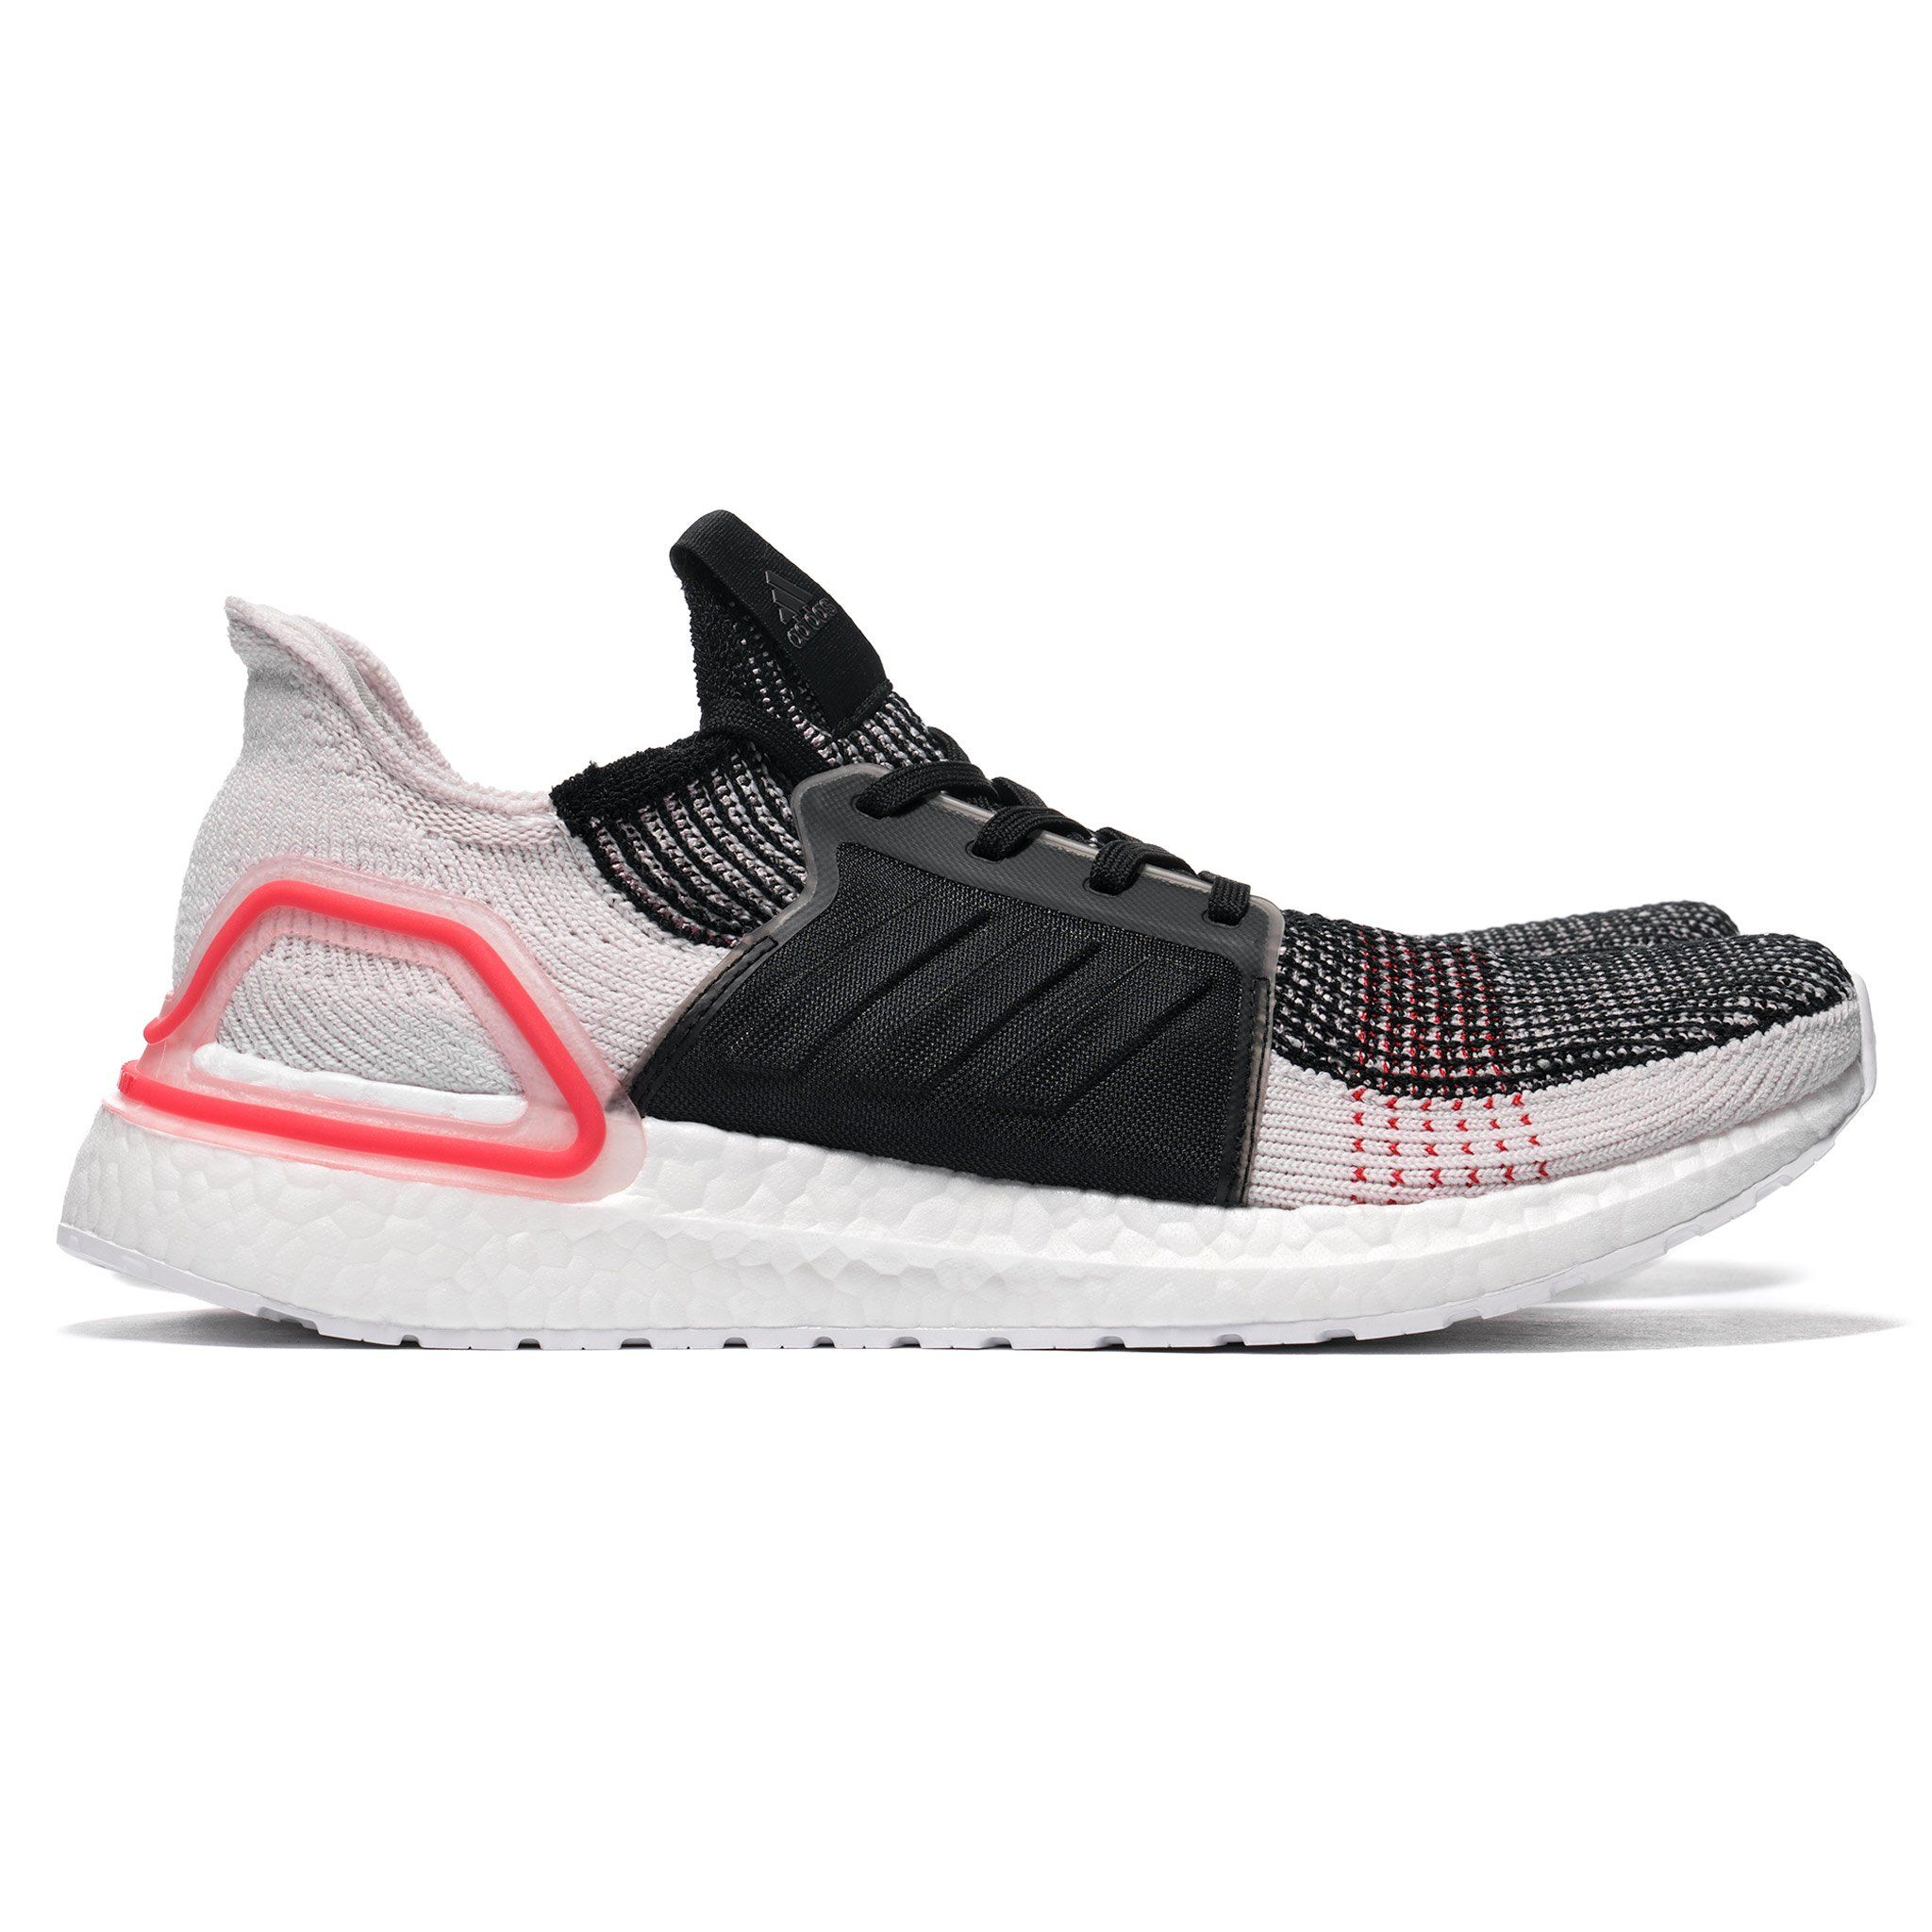 Adidas Ultra Boost 19 Core Black Laser Red Footwear Adidas Ultra Boost Ultra Boost Adidas